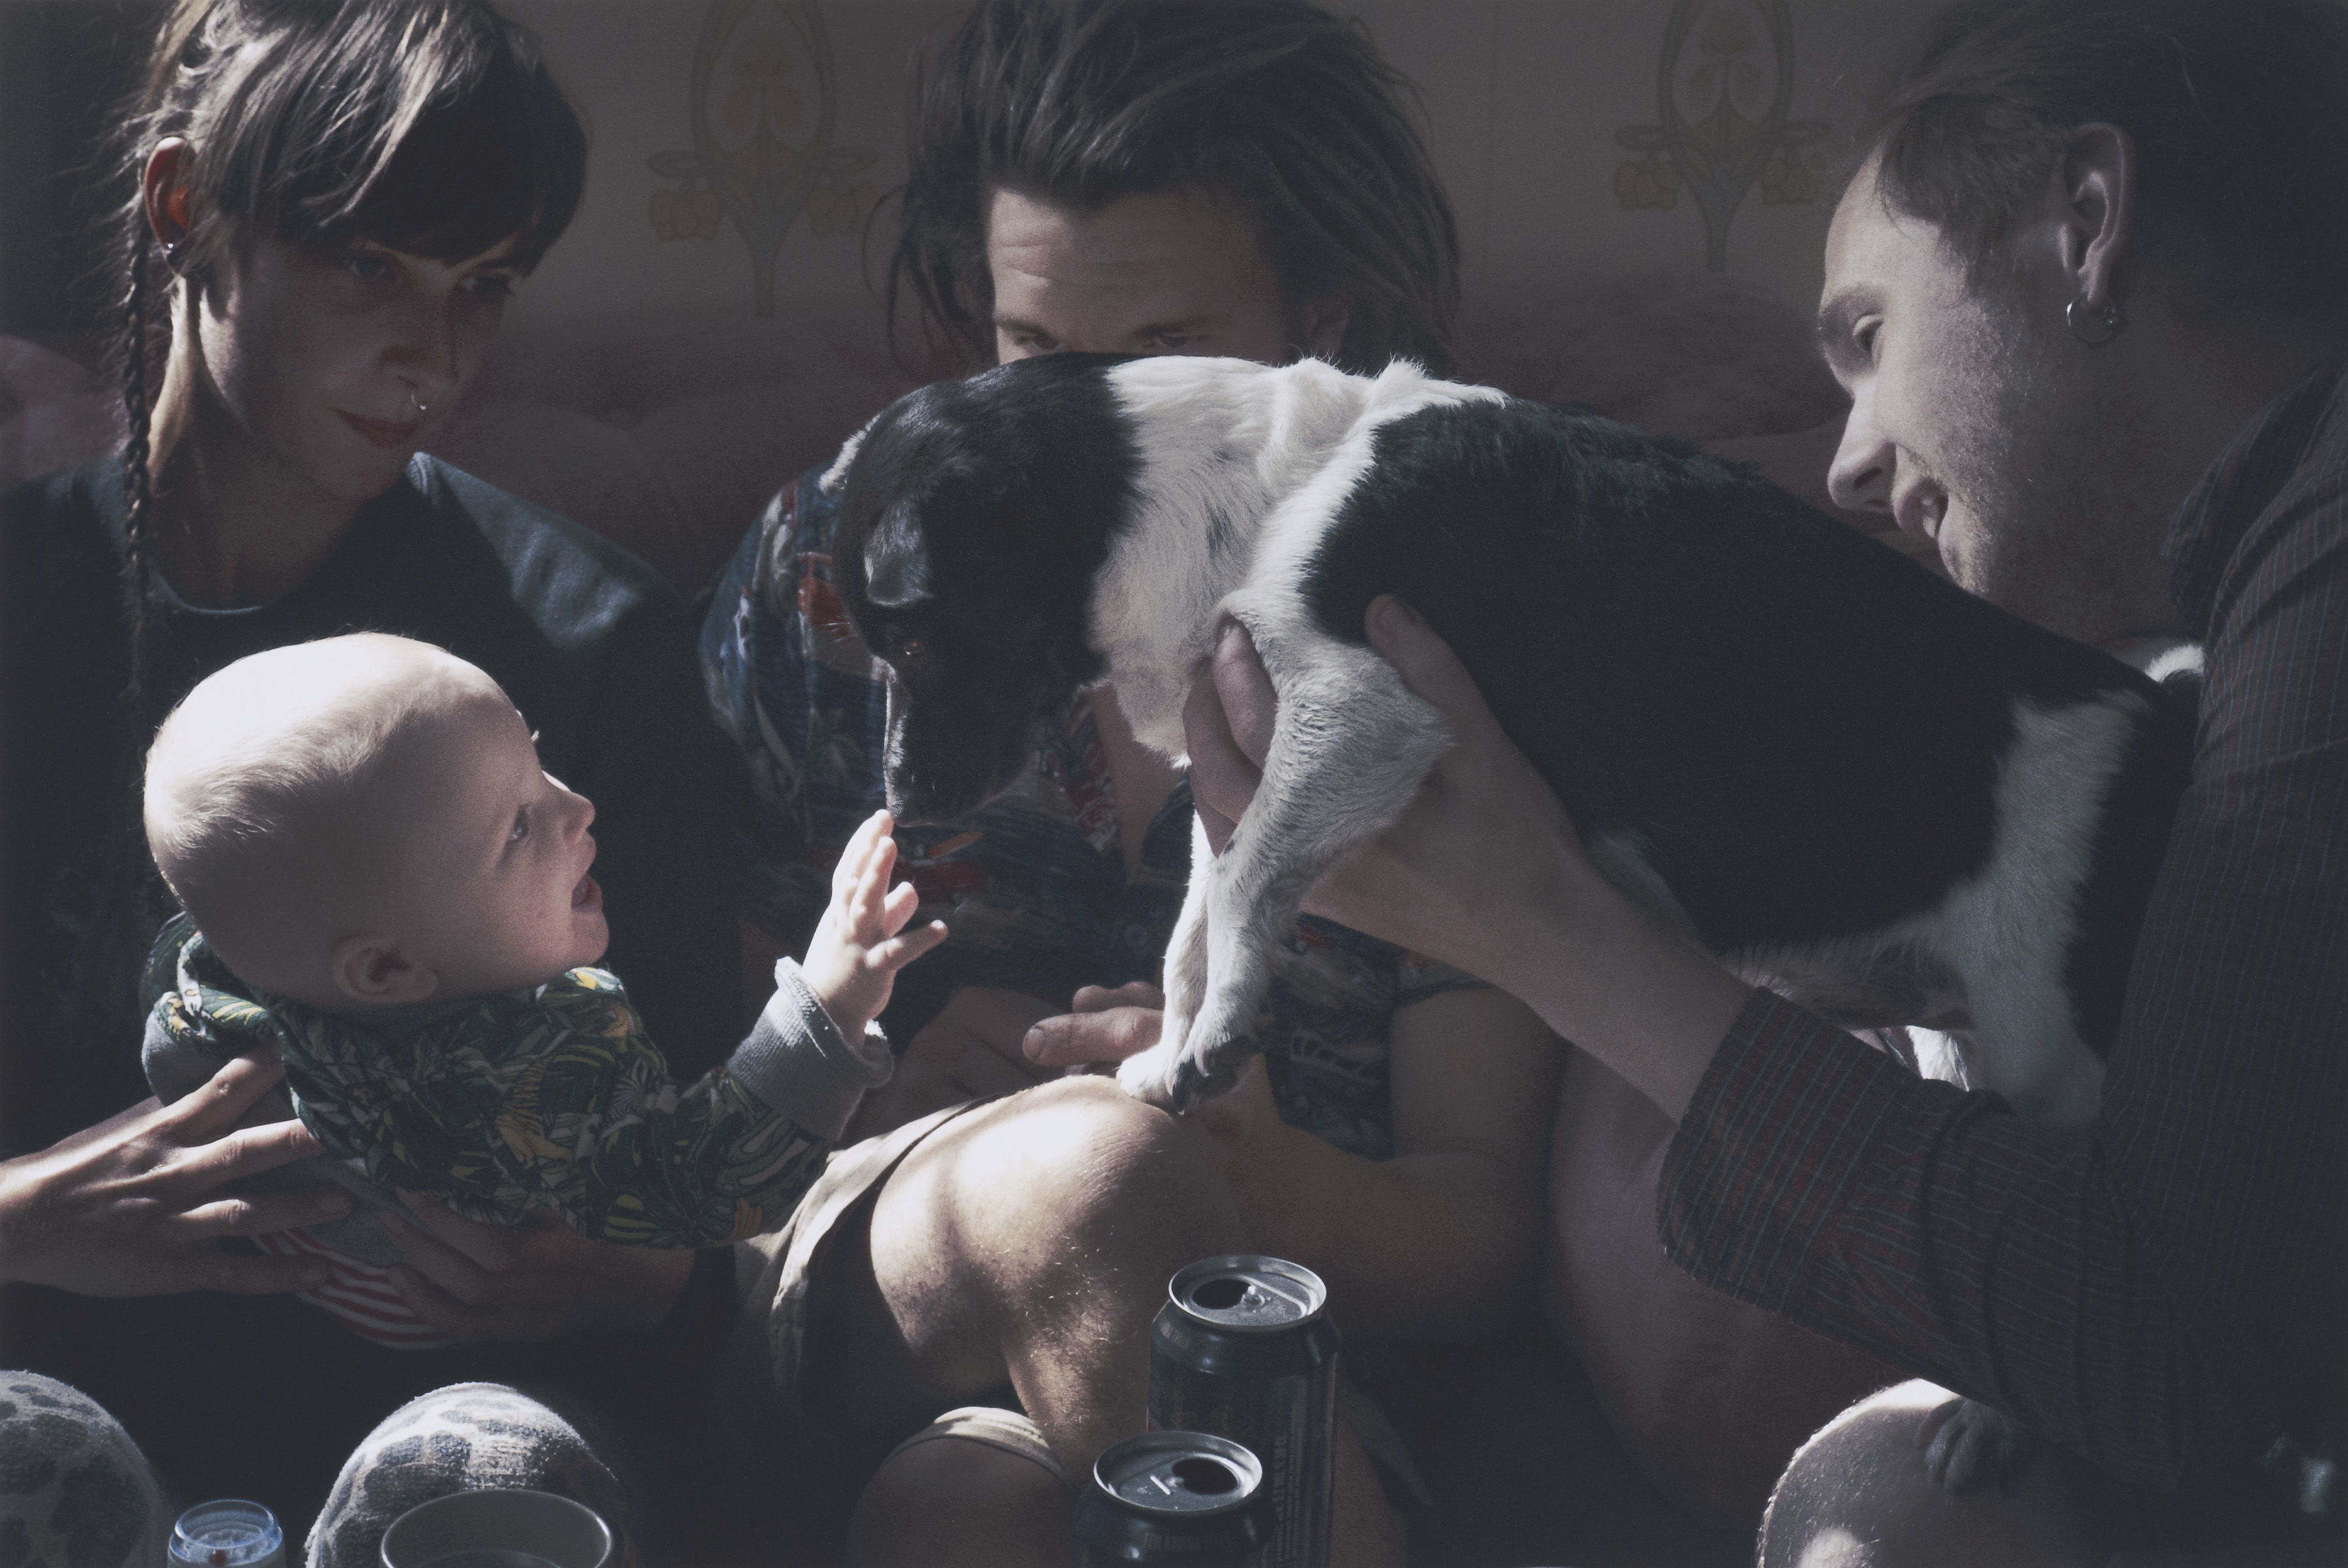 Taylor Wessing Photographic Portrait Prize awarded to former musician